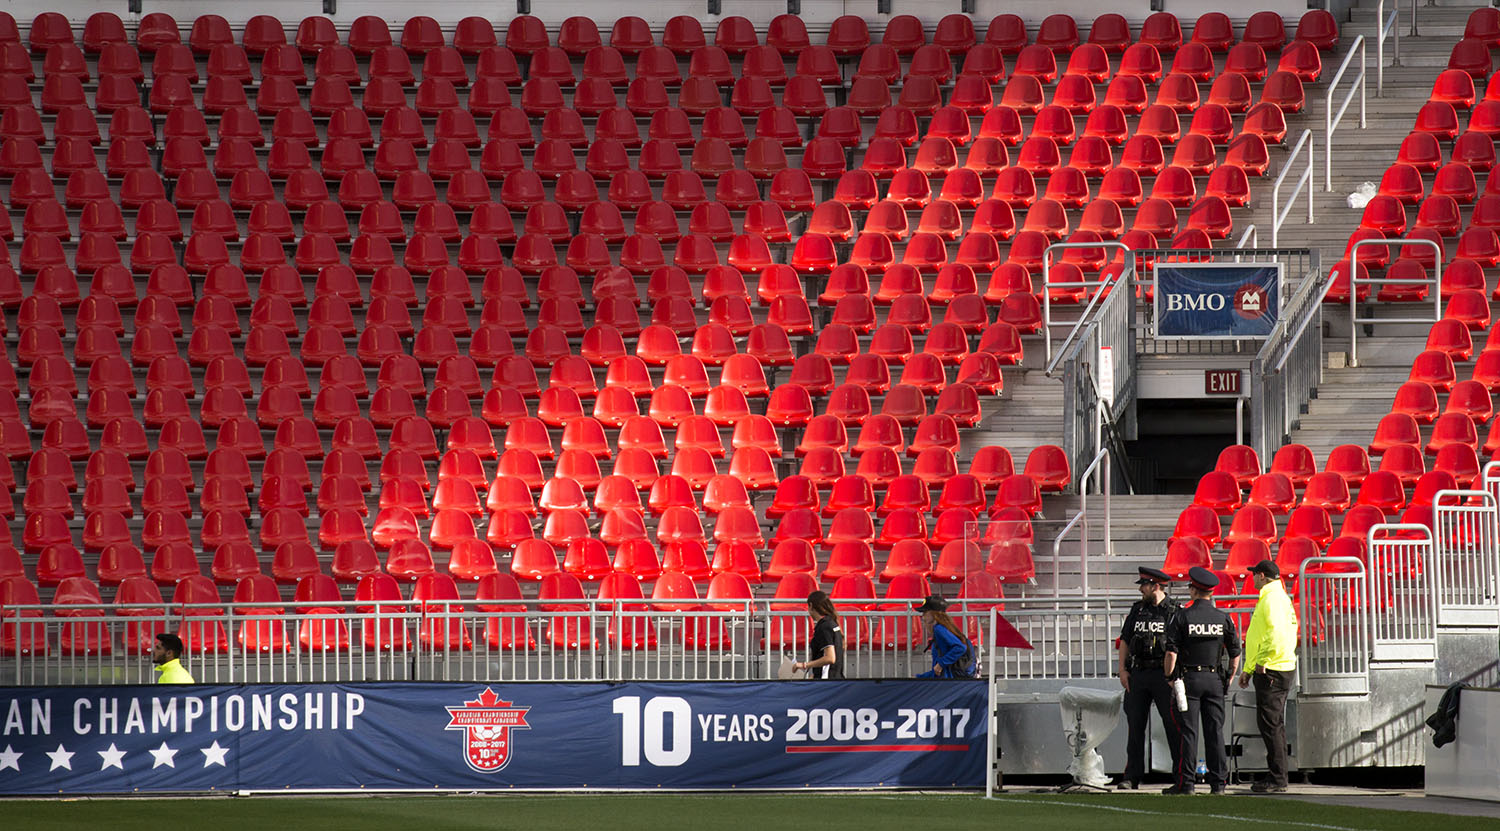 Toronto Police officers watch over the empty stands as staff get the field ready for the Canadian Championship.Image by Dennis Marciniak of denMAR Media.